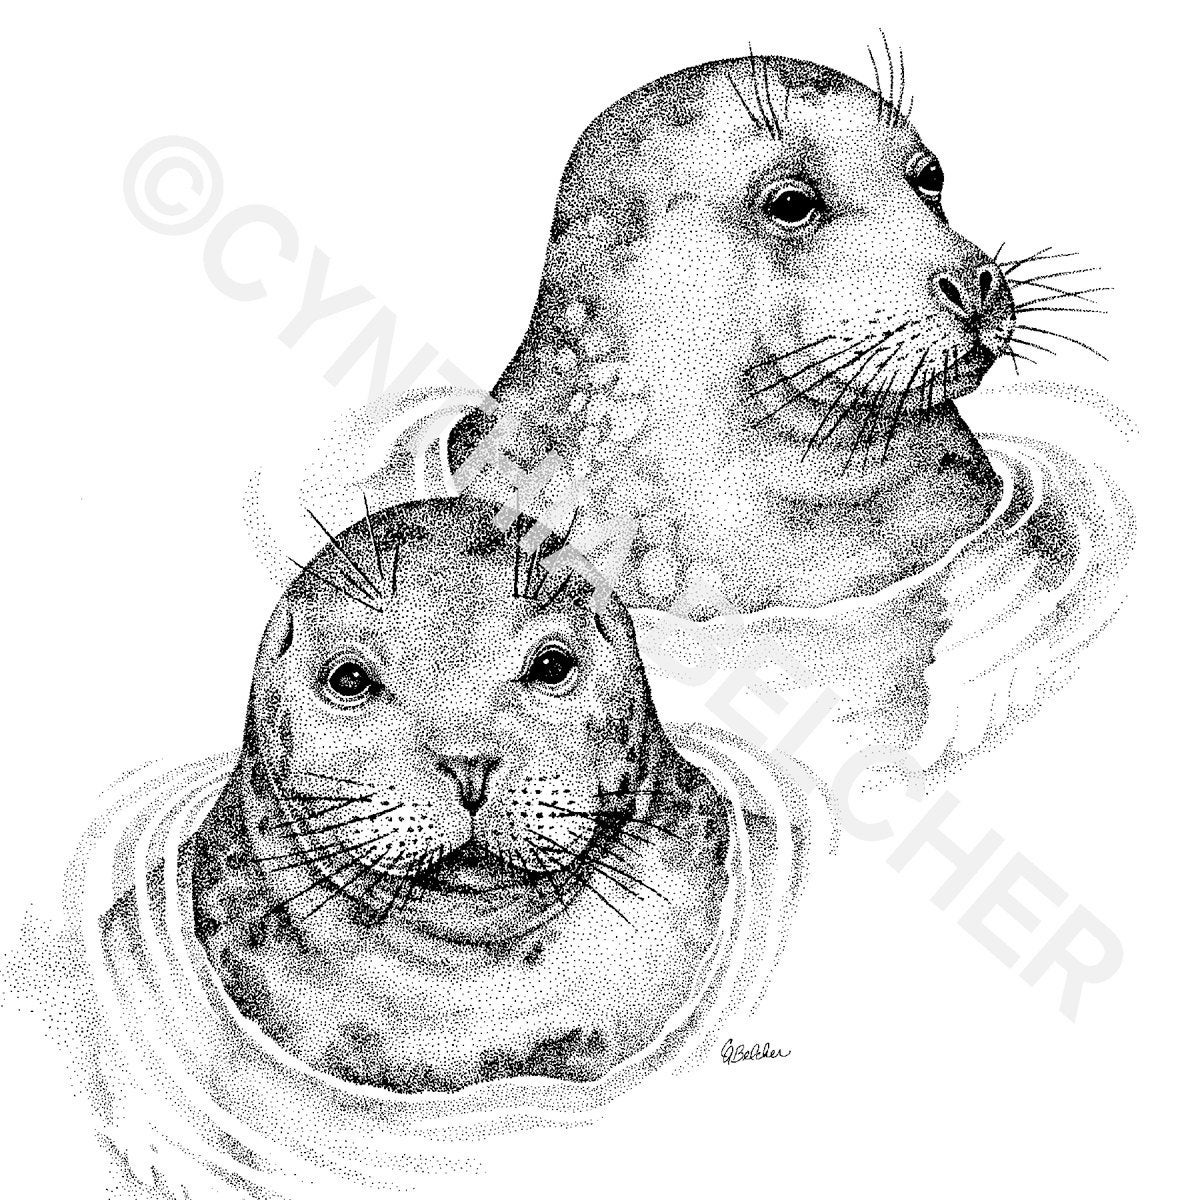 seal drawing cartoon seal drawing in 4 steps with photoshop art kit drawing seal